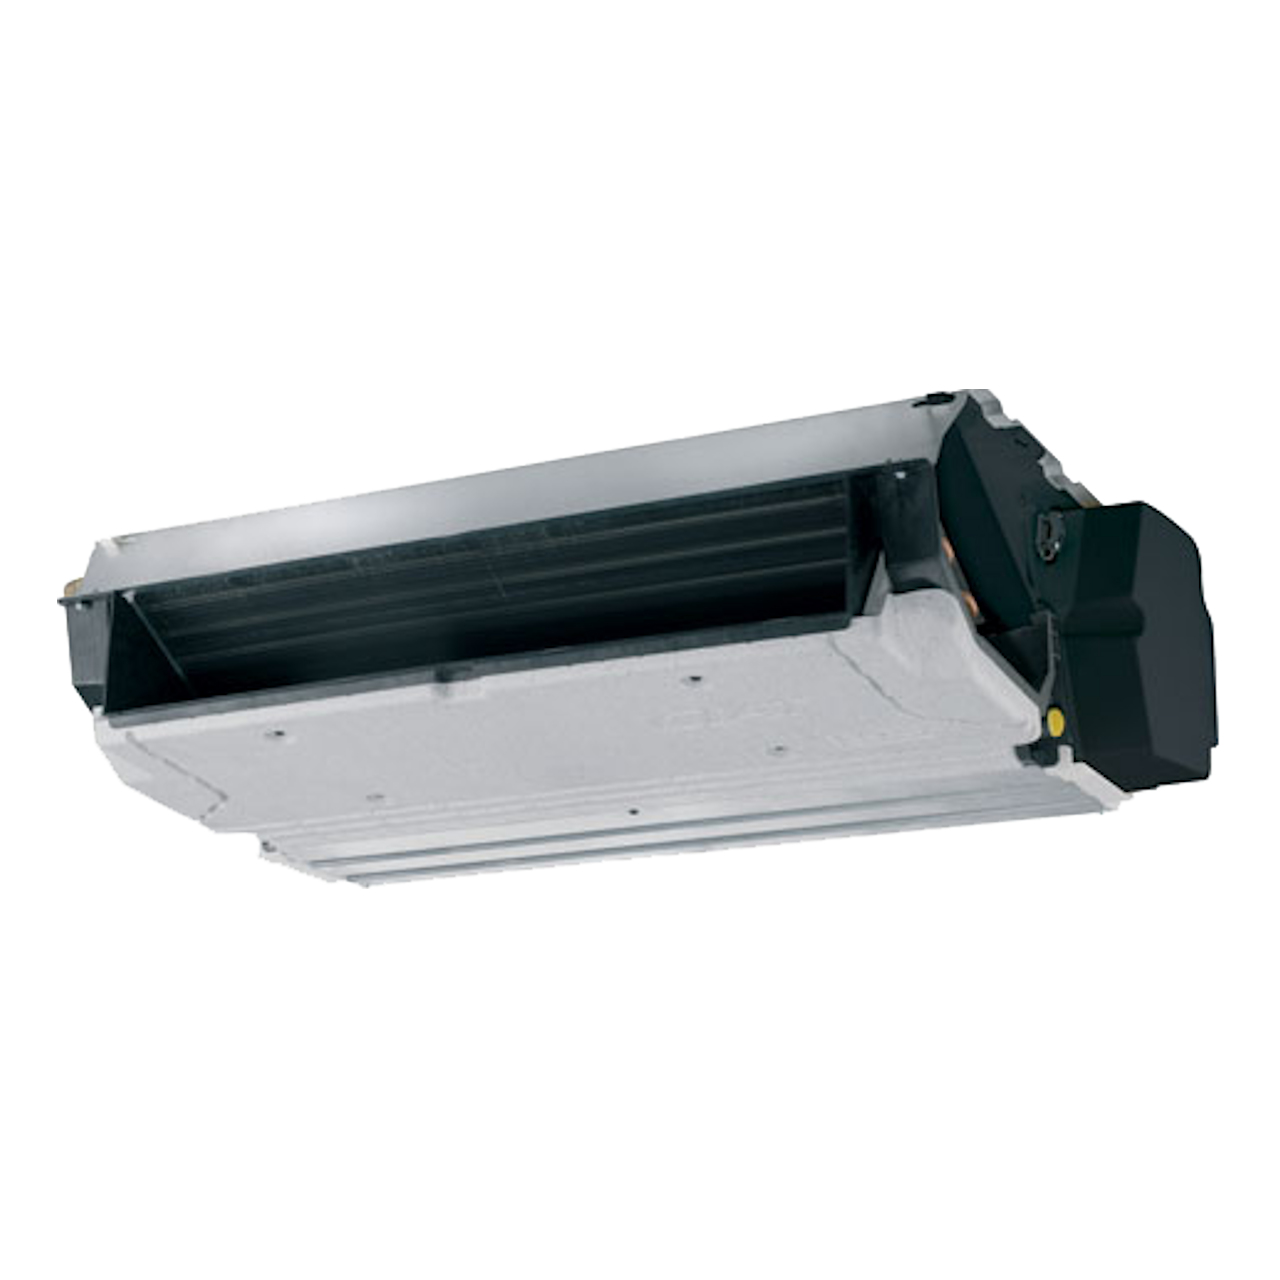 carrier-42ND-concealed-fan-coil-unit